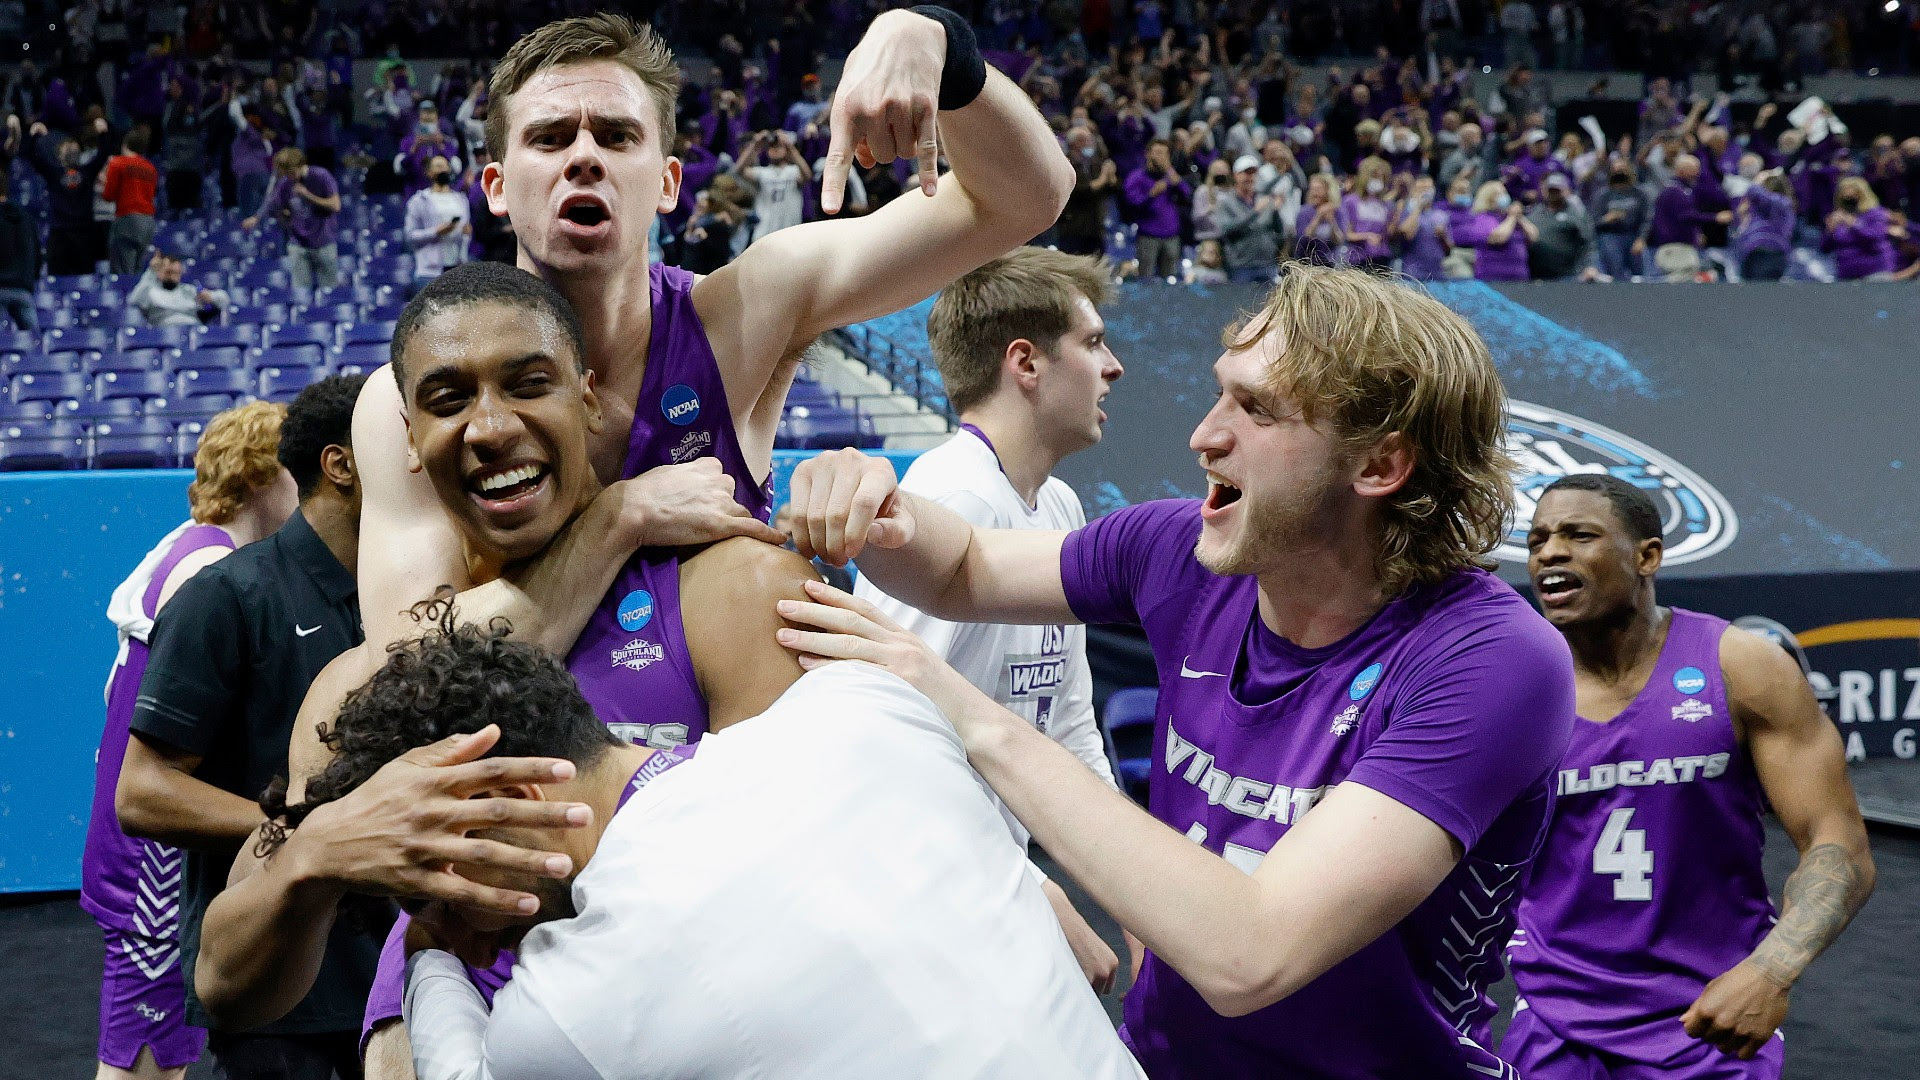 14 seeds in Sweet 16: How Abilene Christian's March Madness run compares to past Cinderellas